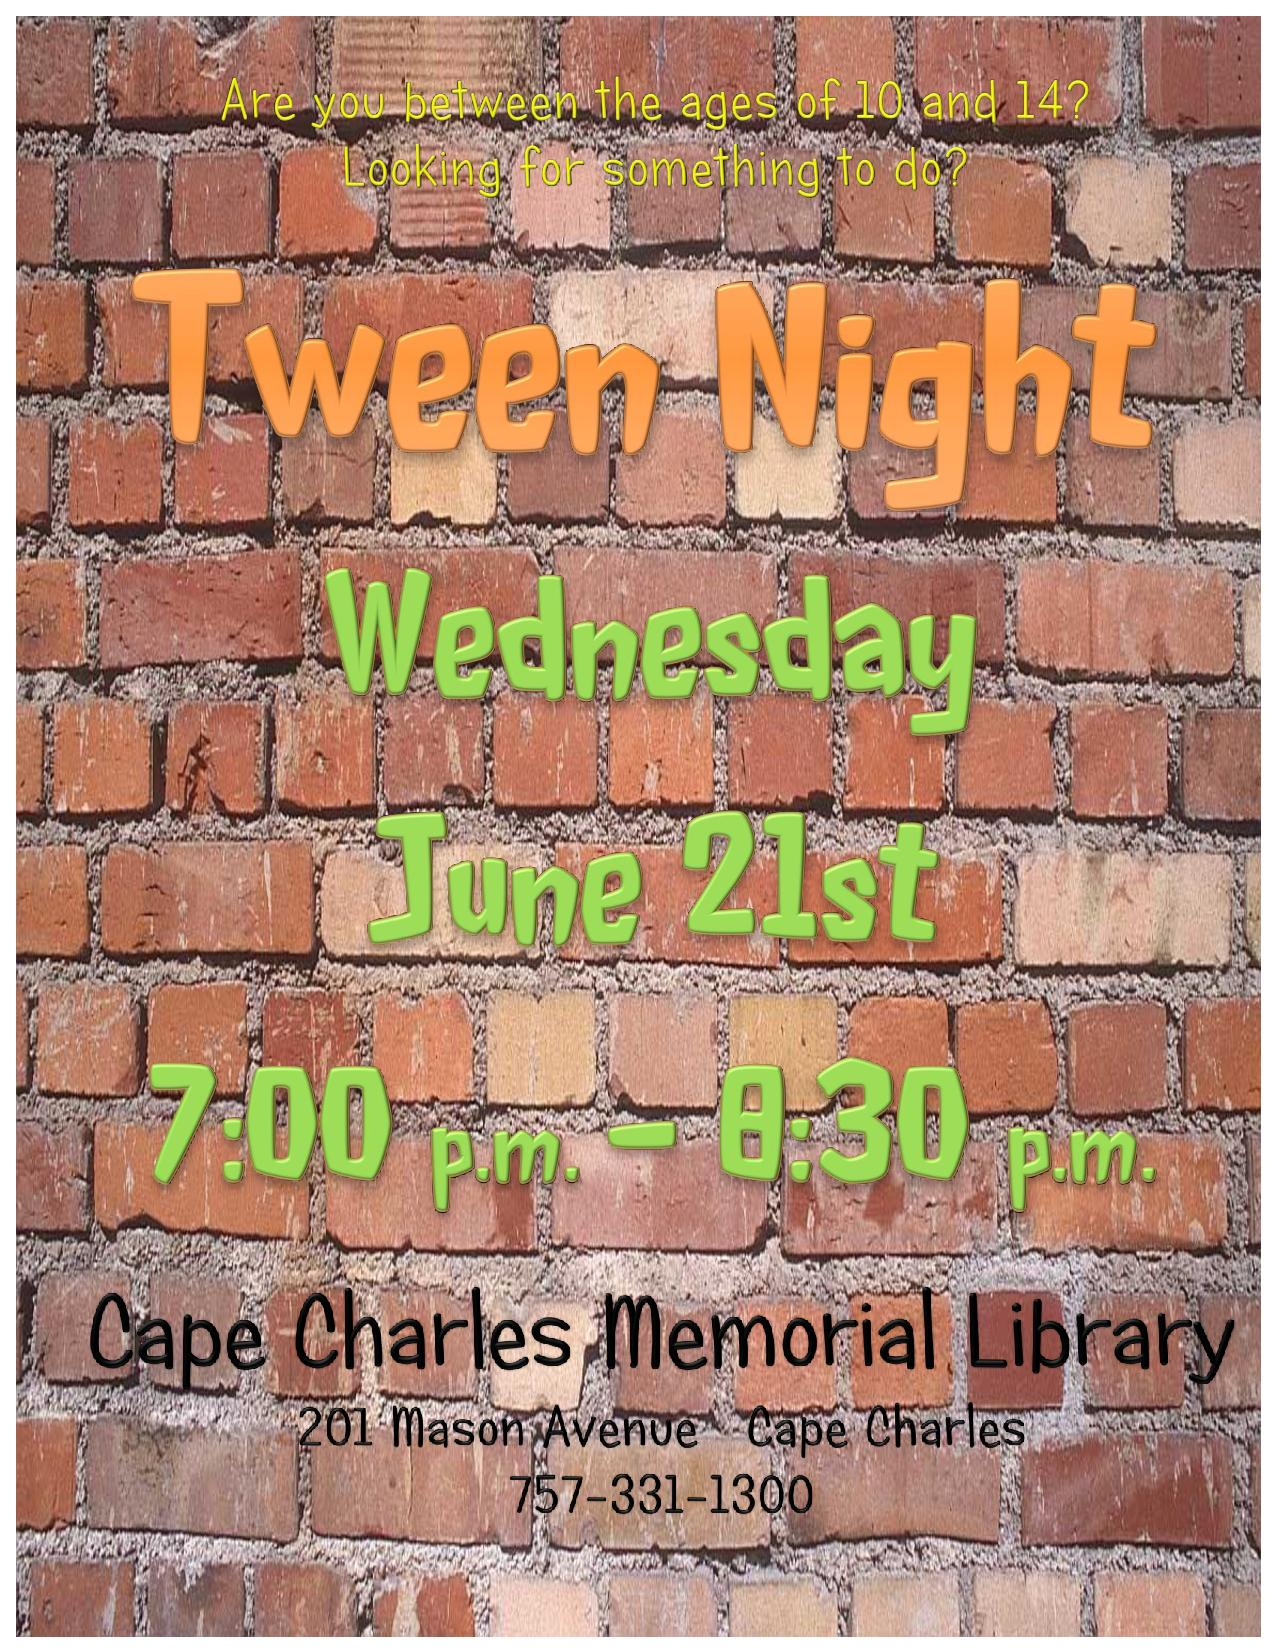 Tween Night! @ Cape Charles Memorial Library